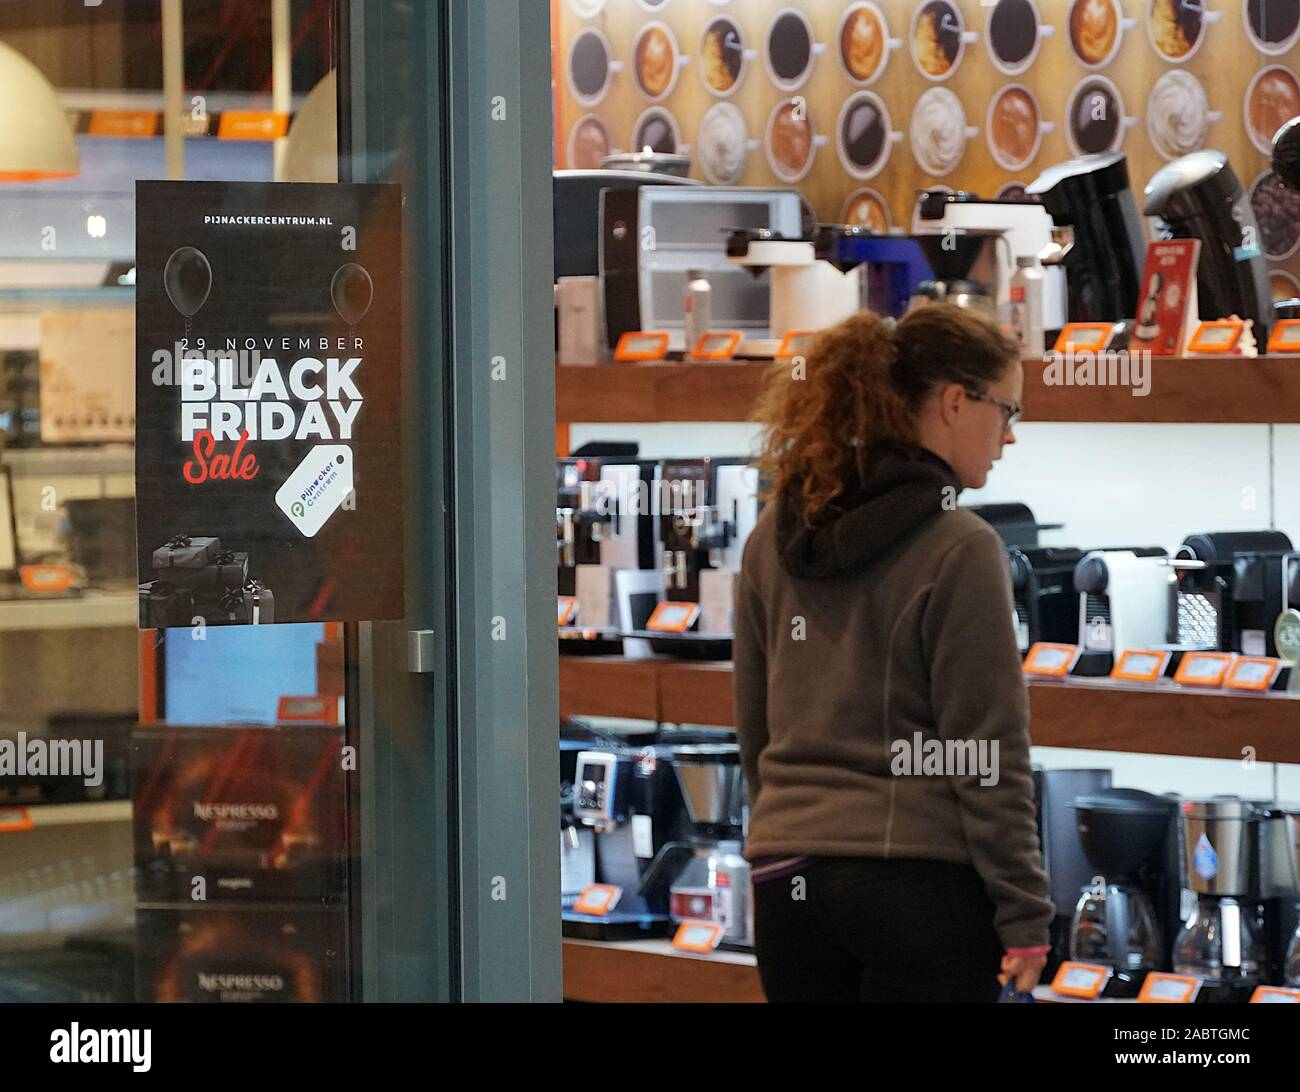 Black Friday Deals High Resolution Stock Photography And Images Alamy